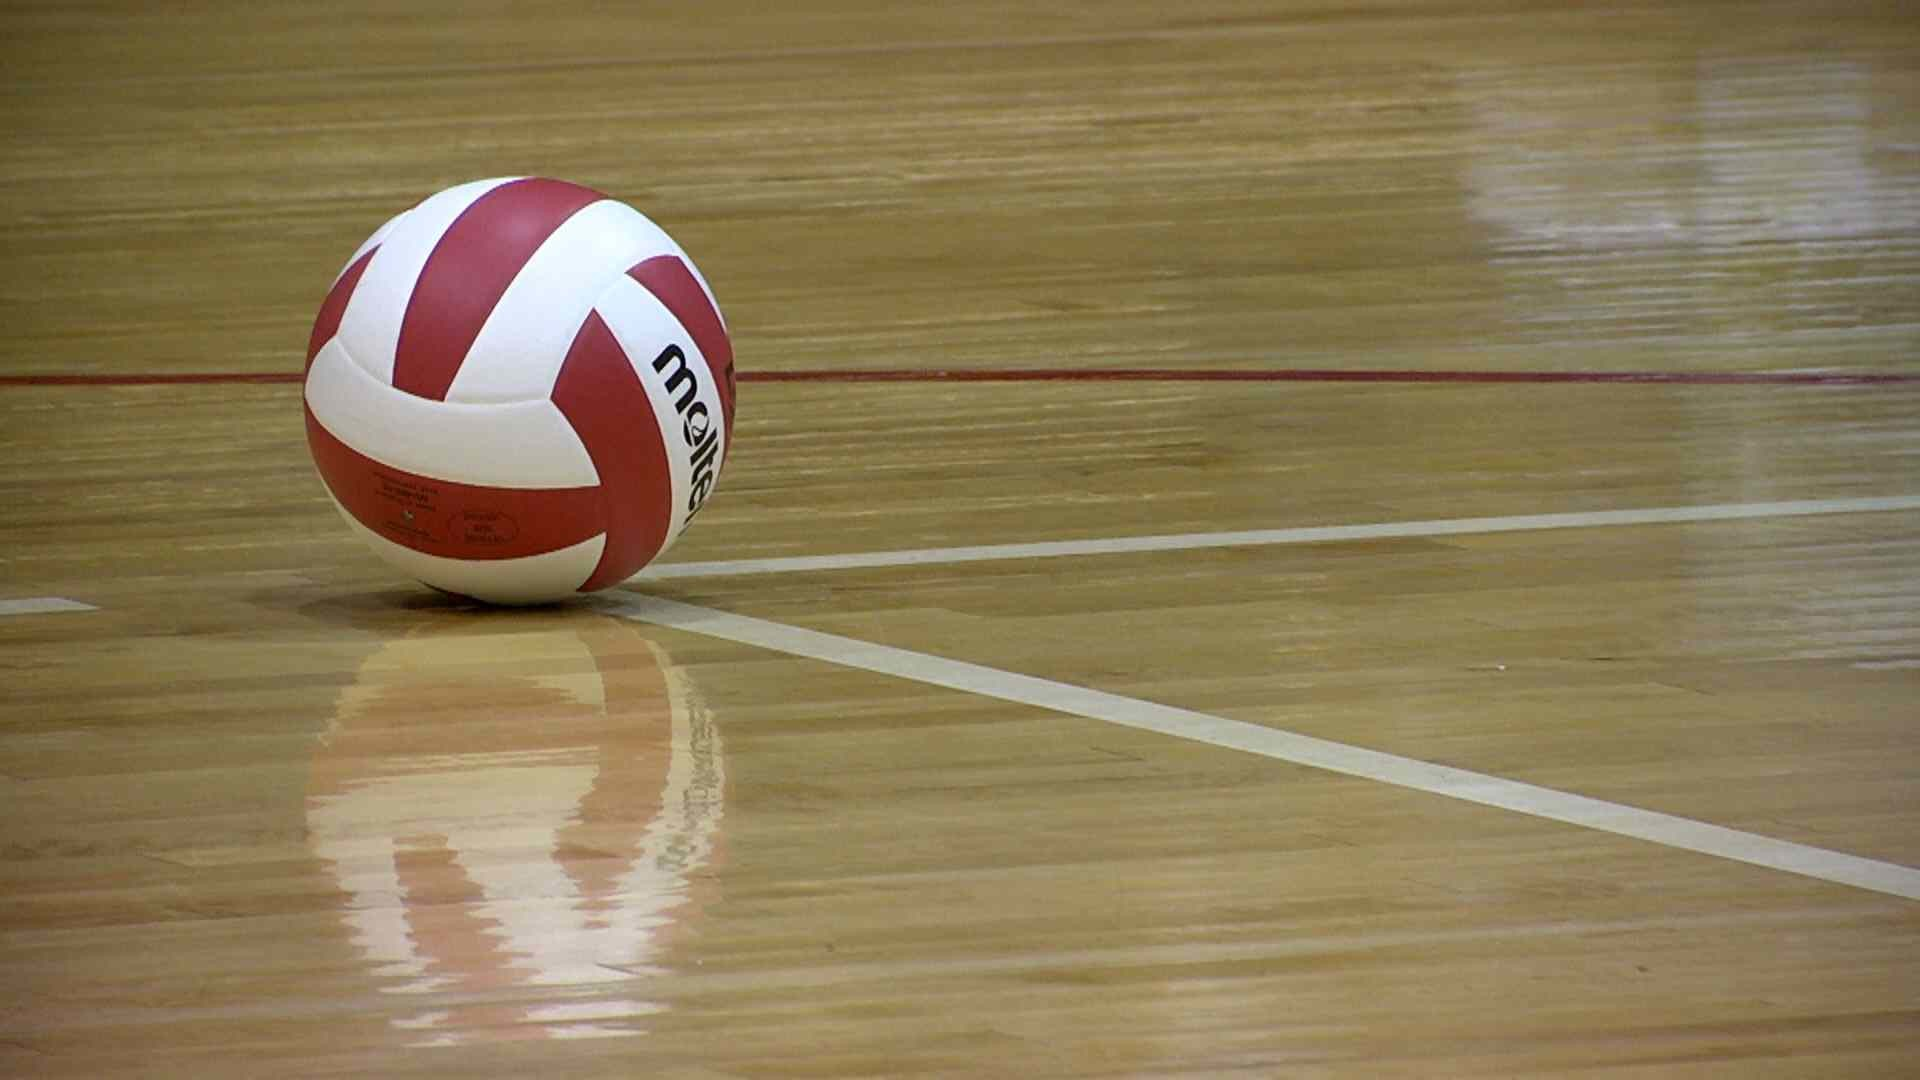 Best ideas about Volleyball Wallpaper on Pinterest Volleyball 1024×768 Volleyball  Wallpapers (37 Wallpapers